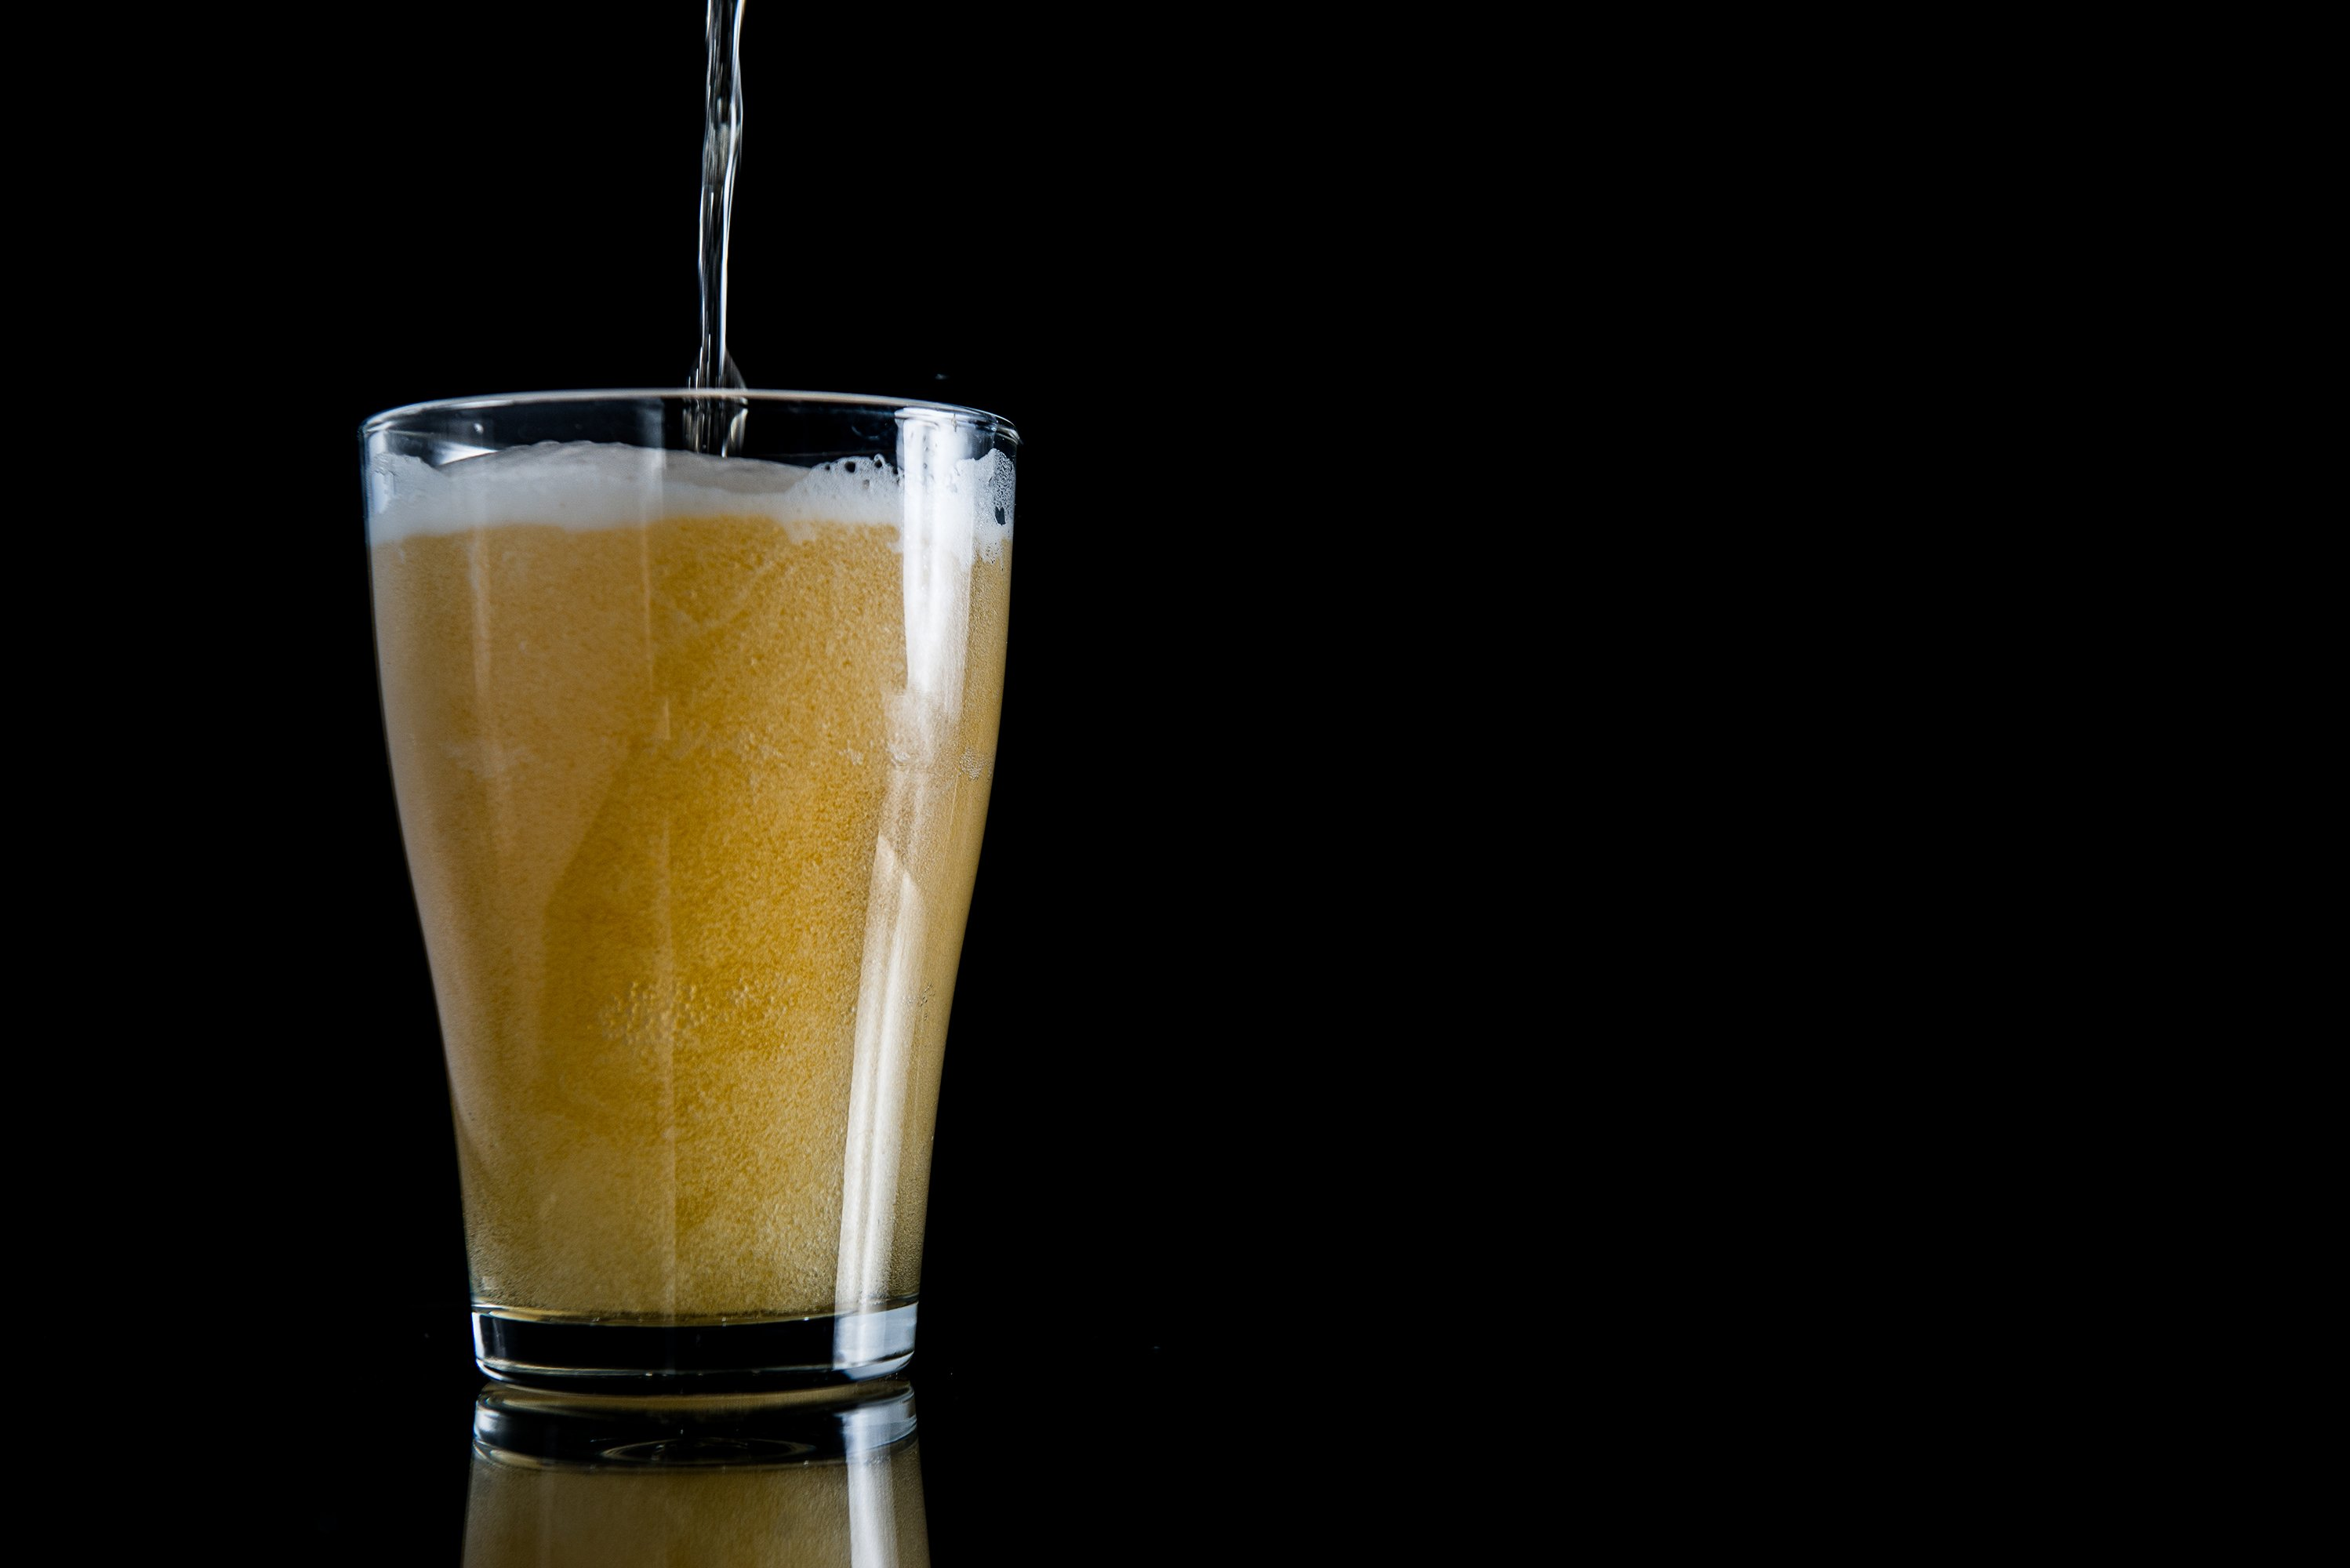 foam beer poured into a glass on a black background example image 1